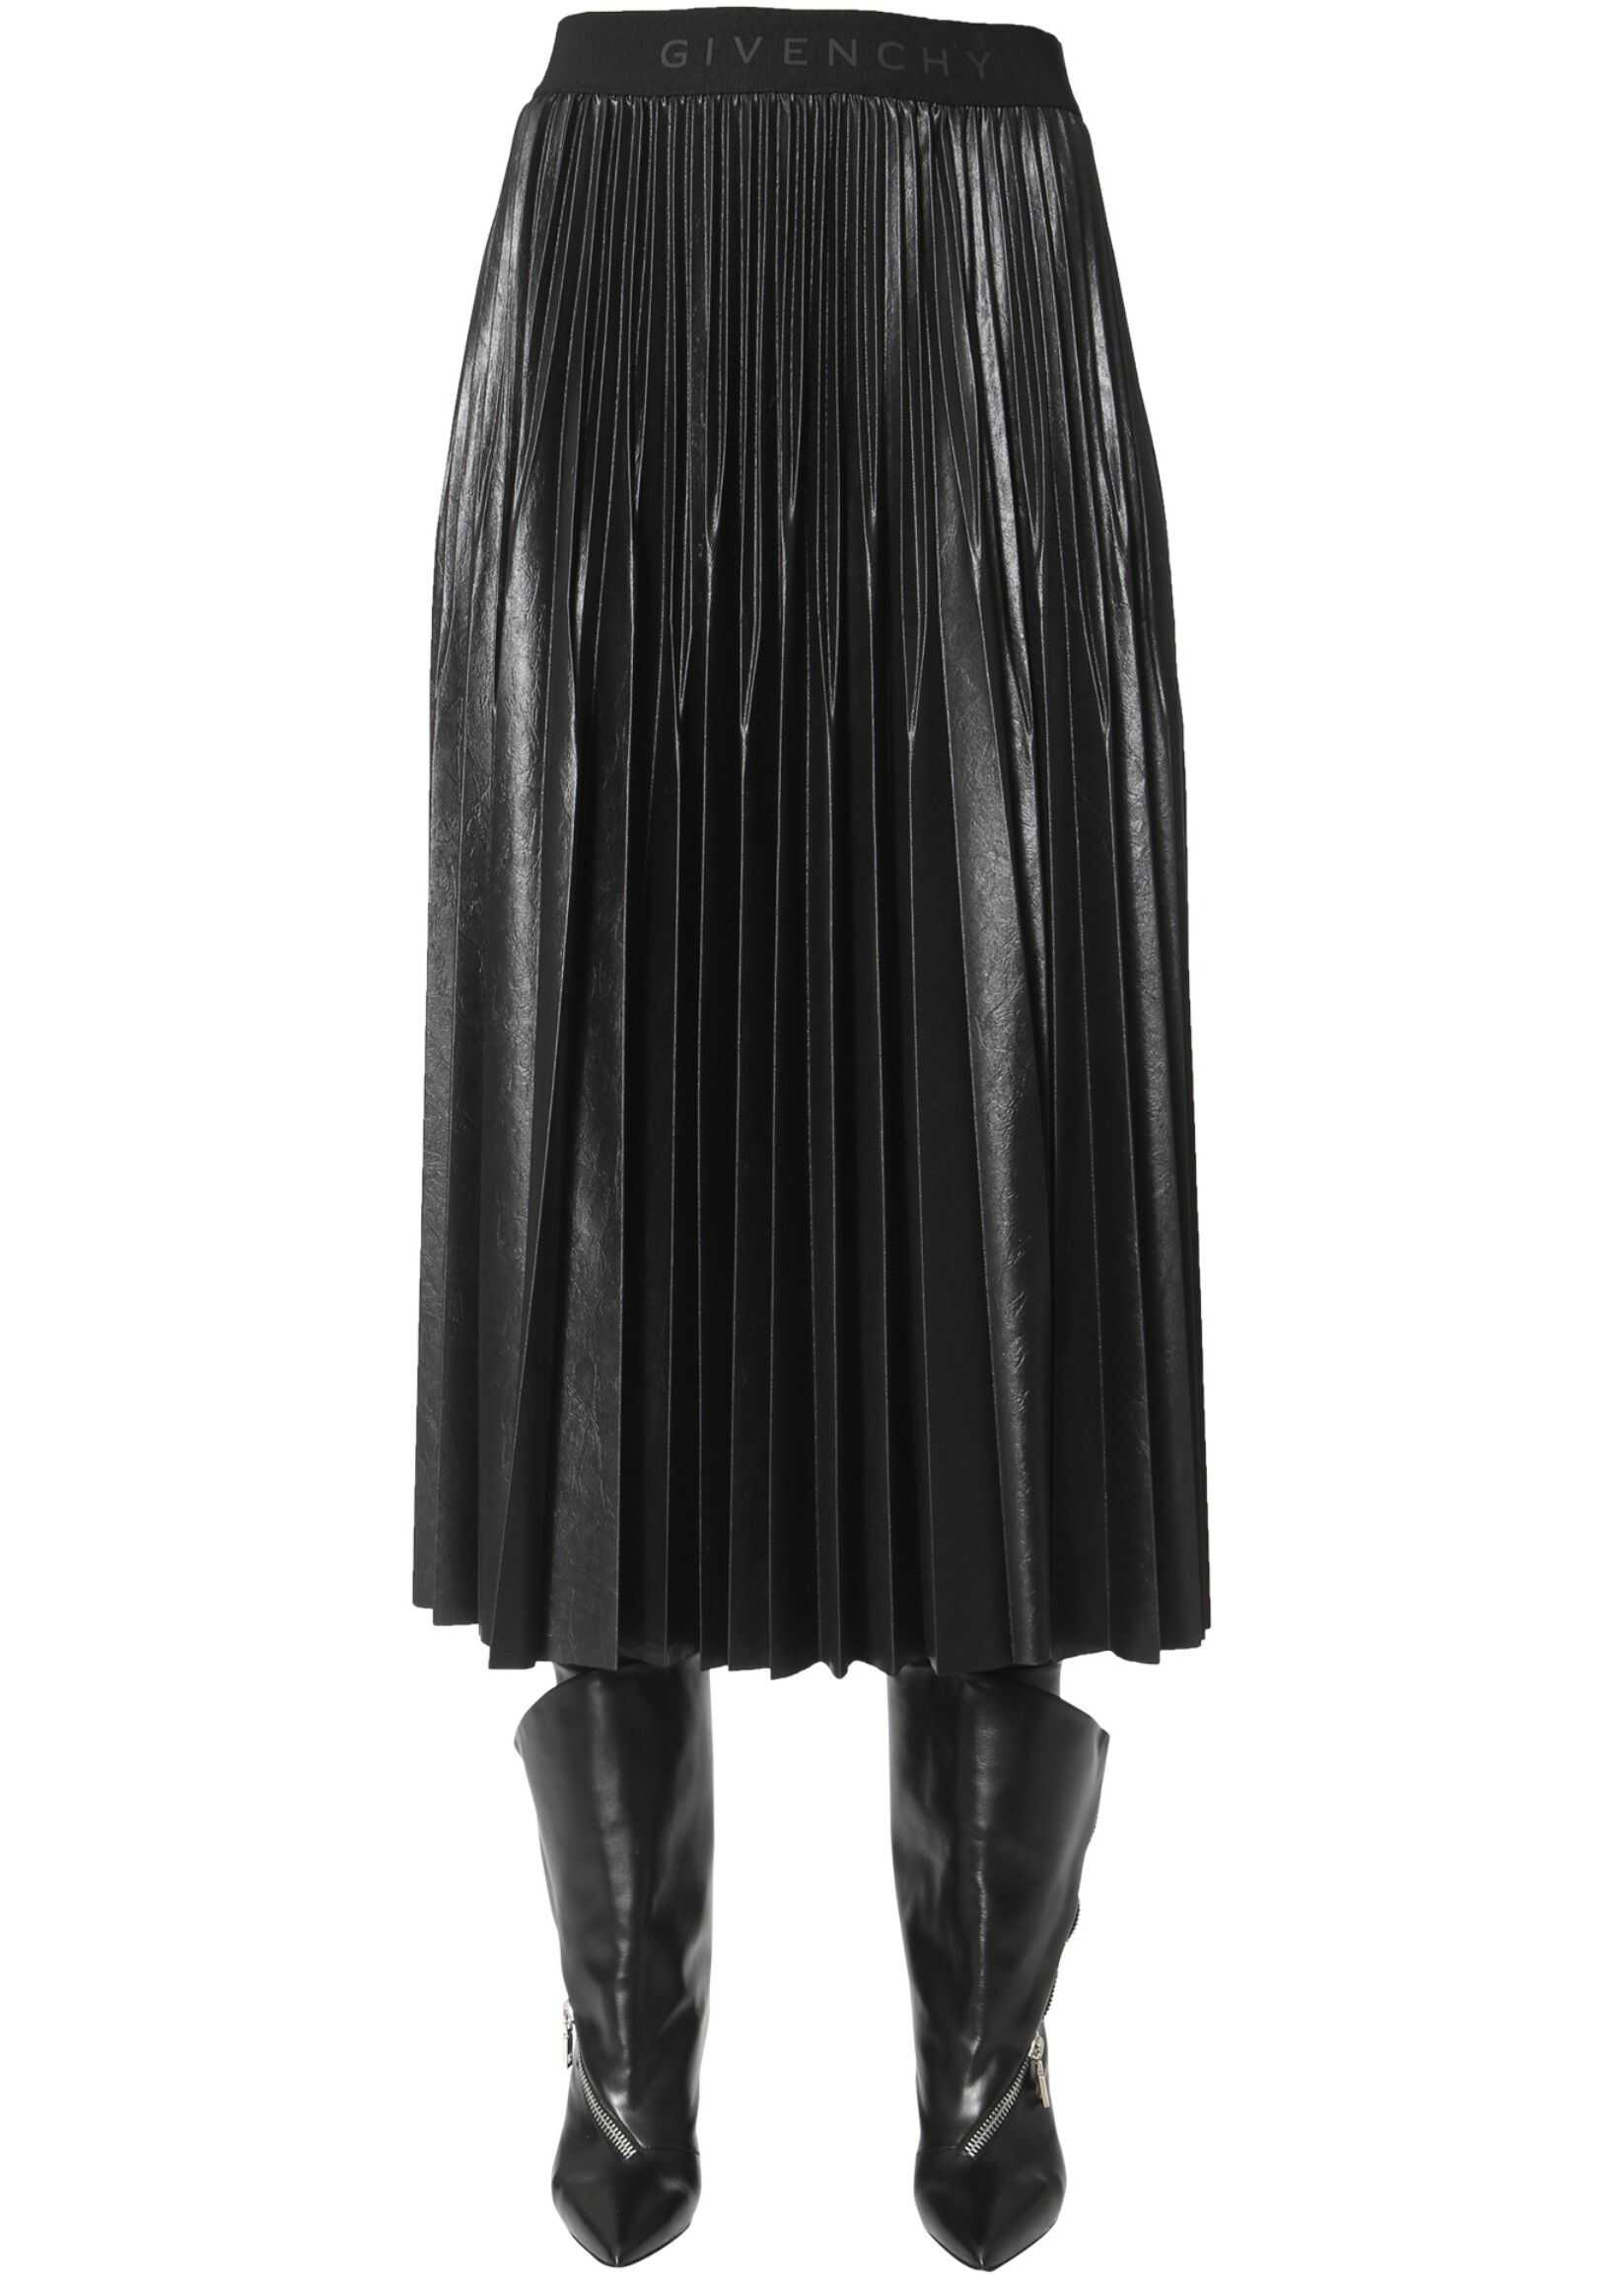 Givenchy Pleated Skirt BLACK